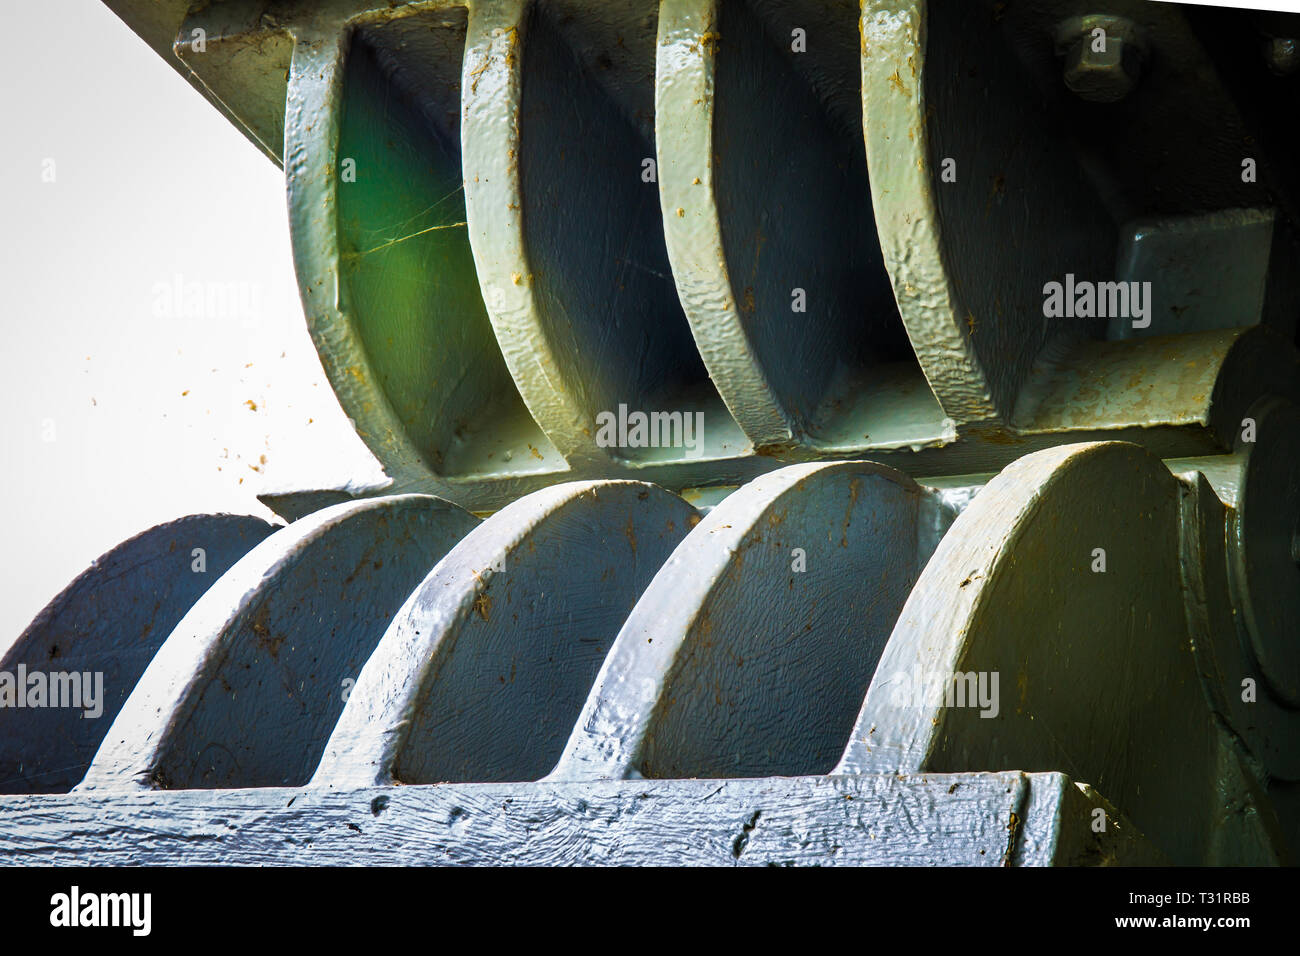 Abstract image of parts of a steel railway bridge Stock Photo